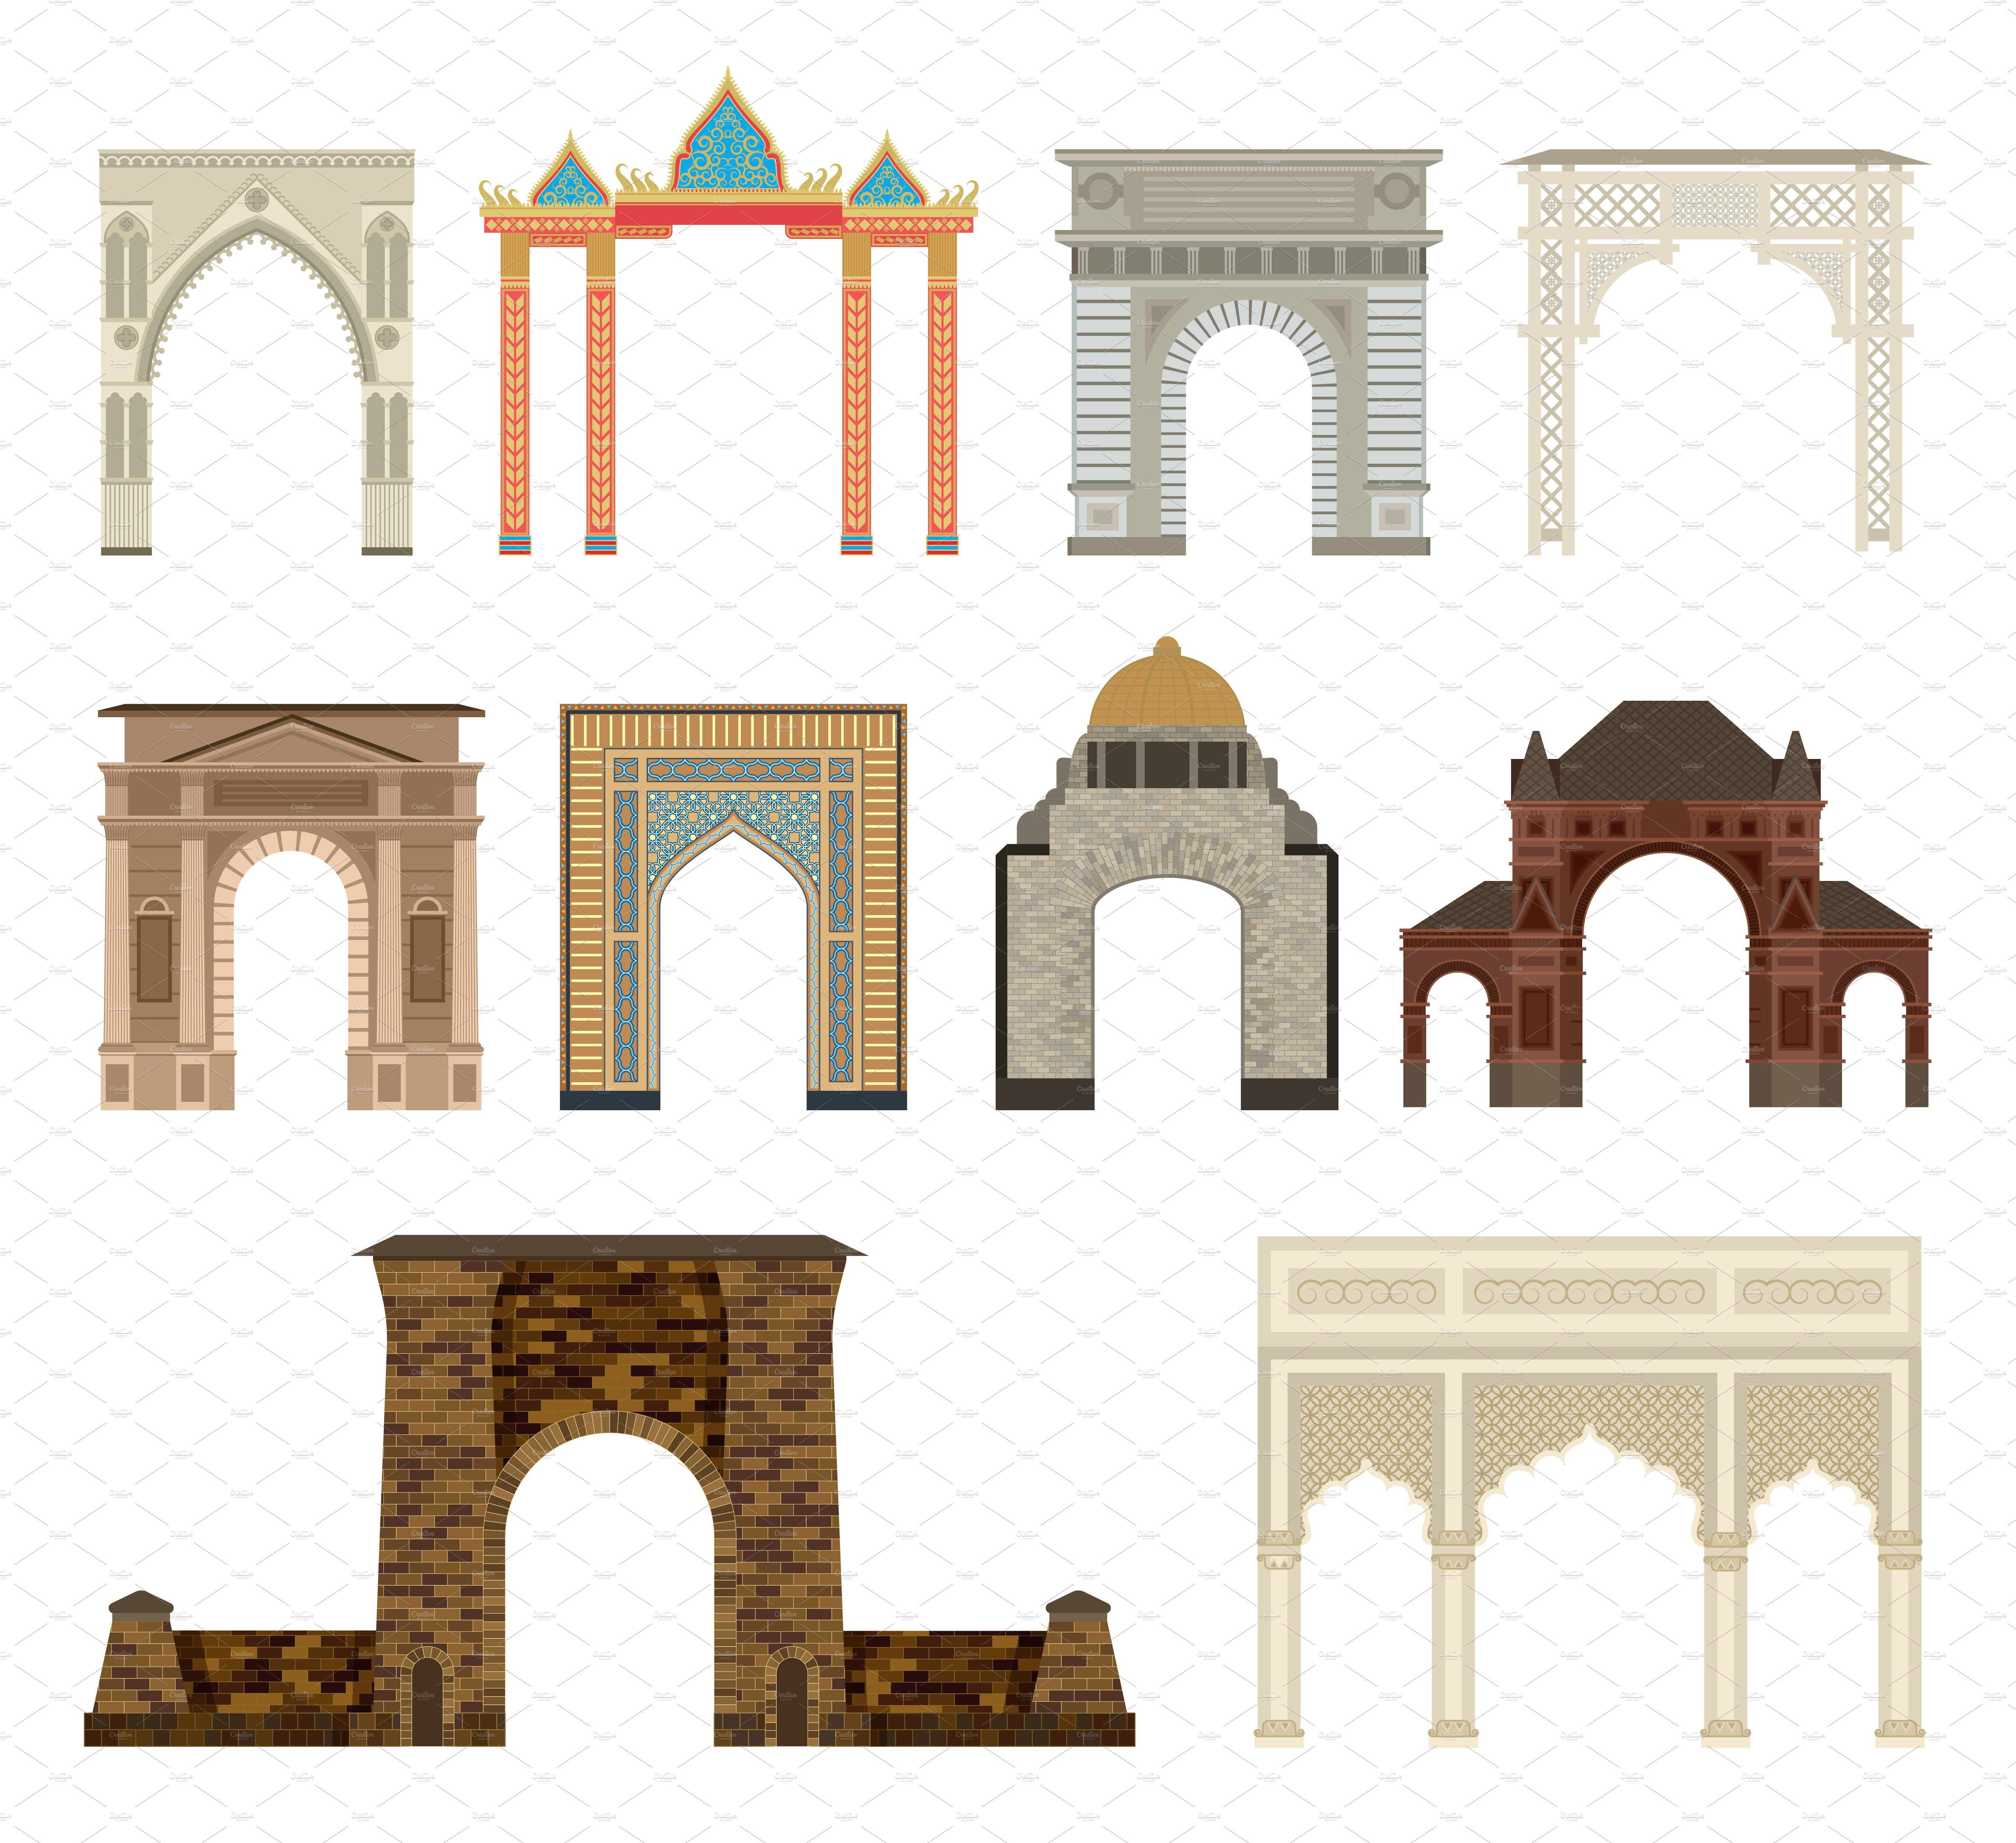 Arch Vector Set Illustration In 2020 Entrance Gates Design Entrance Design Main Gate Design